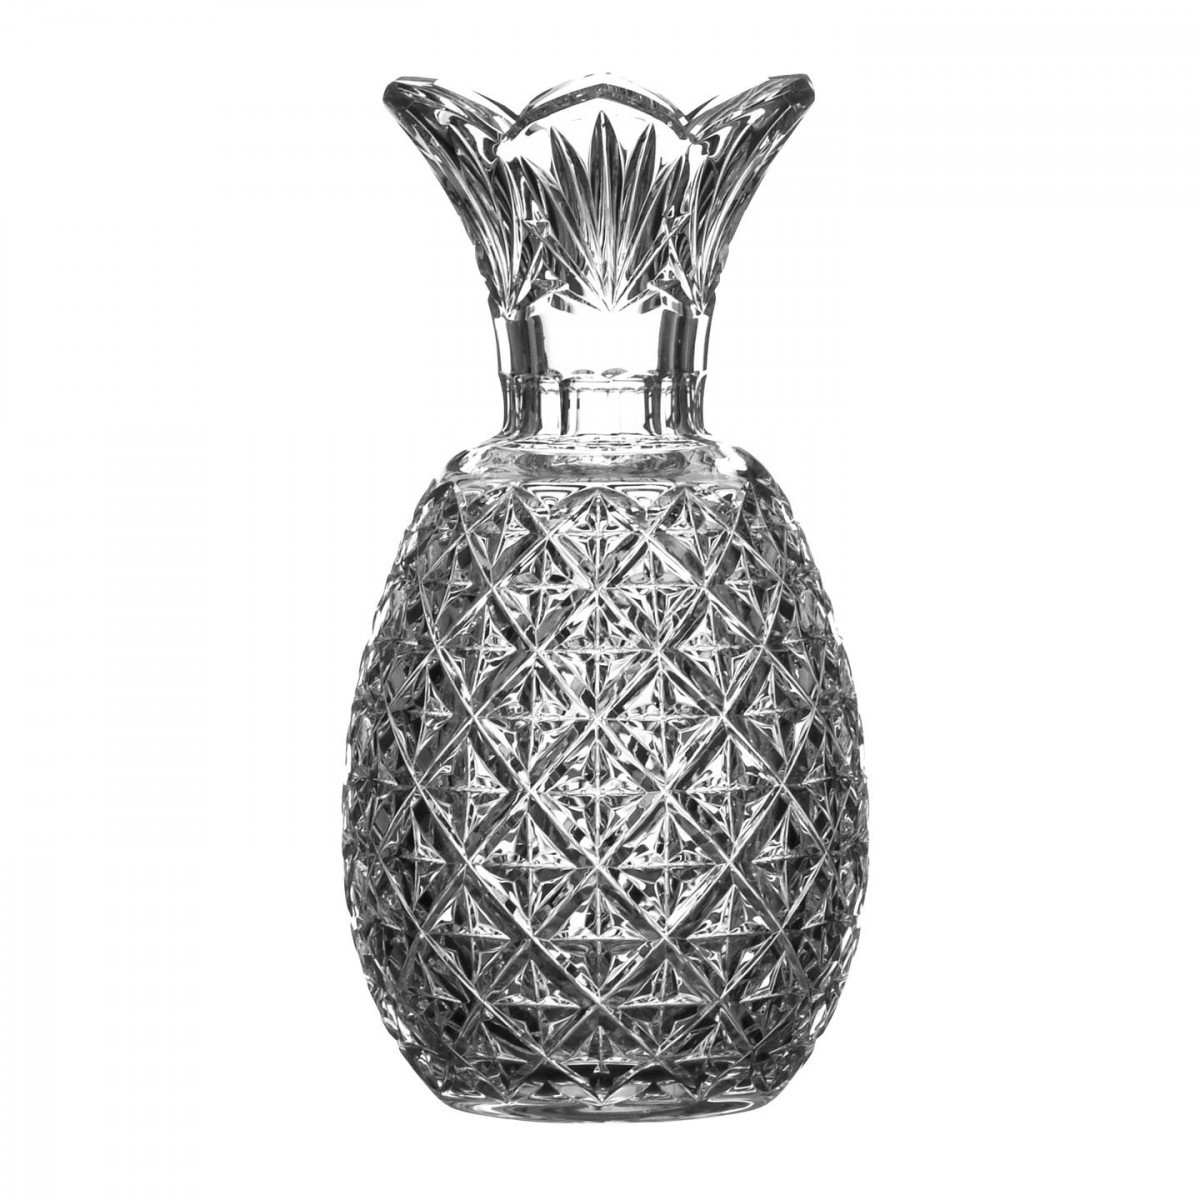 17 attractive Waterford Vases Discontinued 2021 free download waterford vases discontinued of pineapple vase discontinued waterford us with regard to pineapple vase discontinued